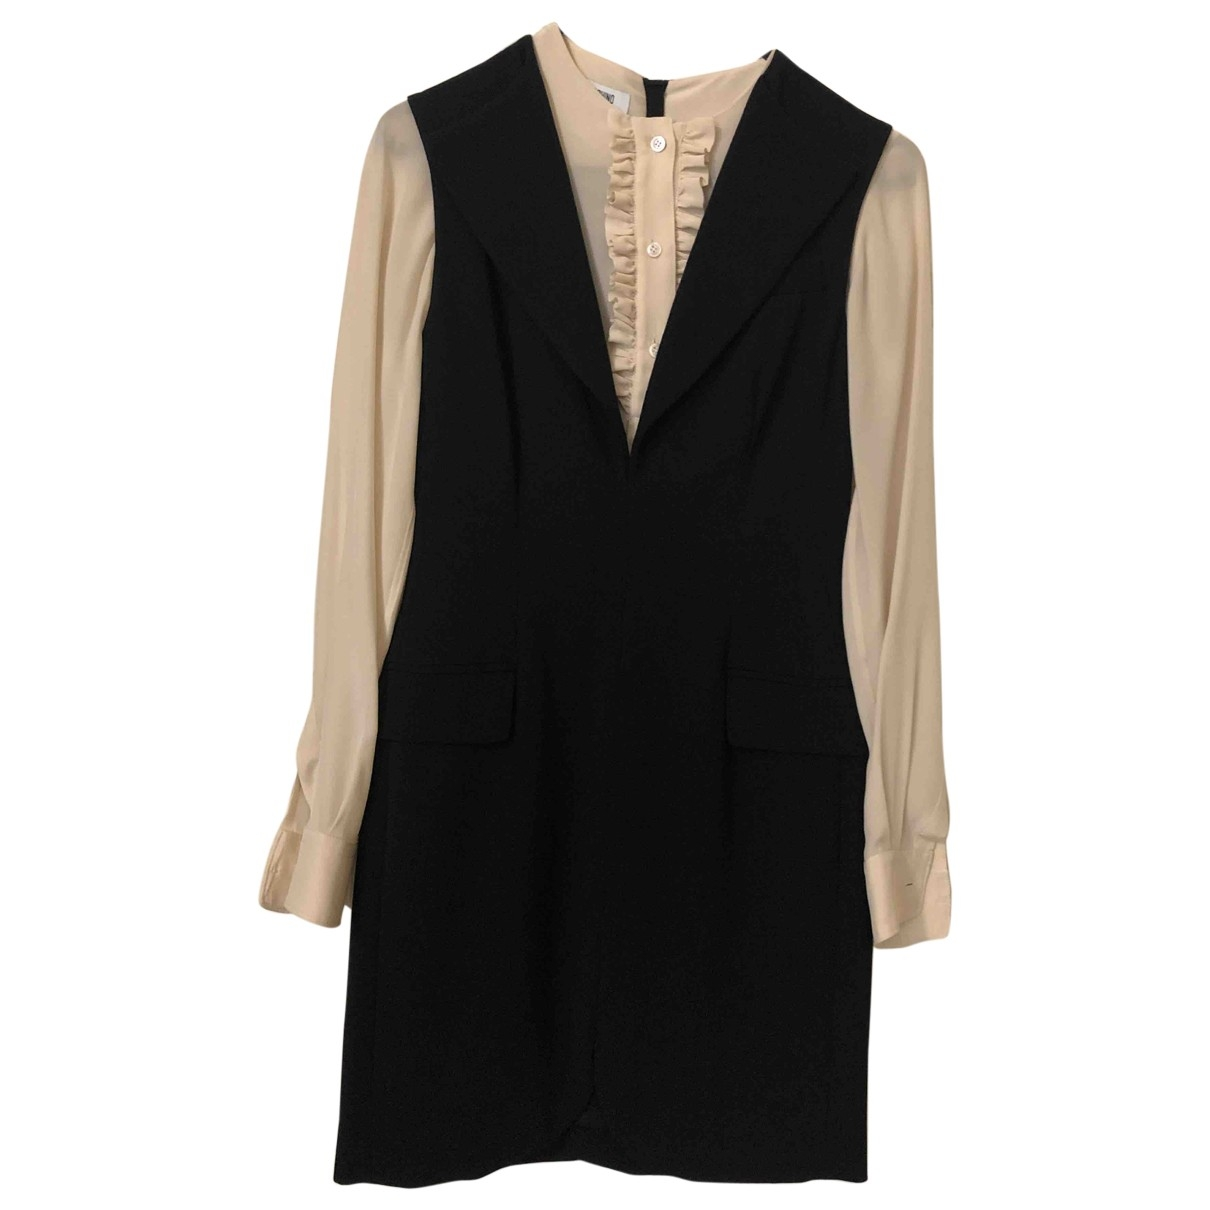 Moschino \N Multicolour dress for Women 38 IT